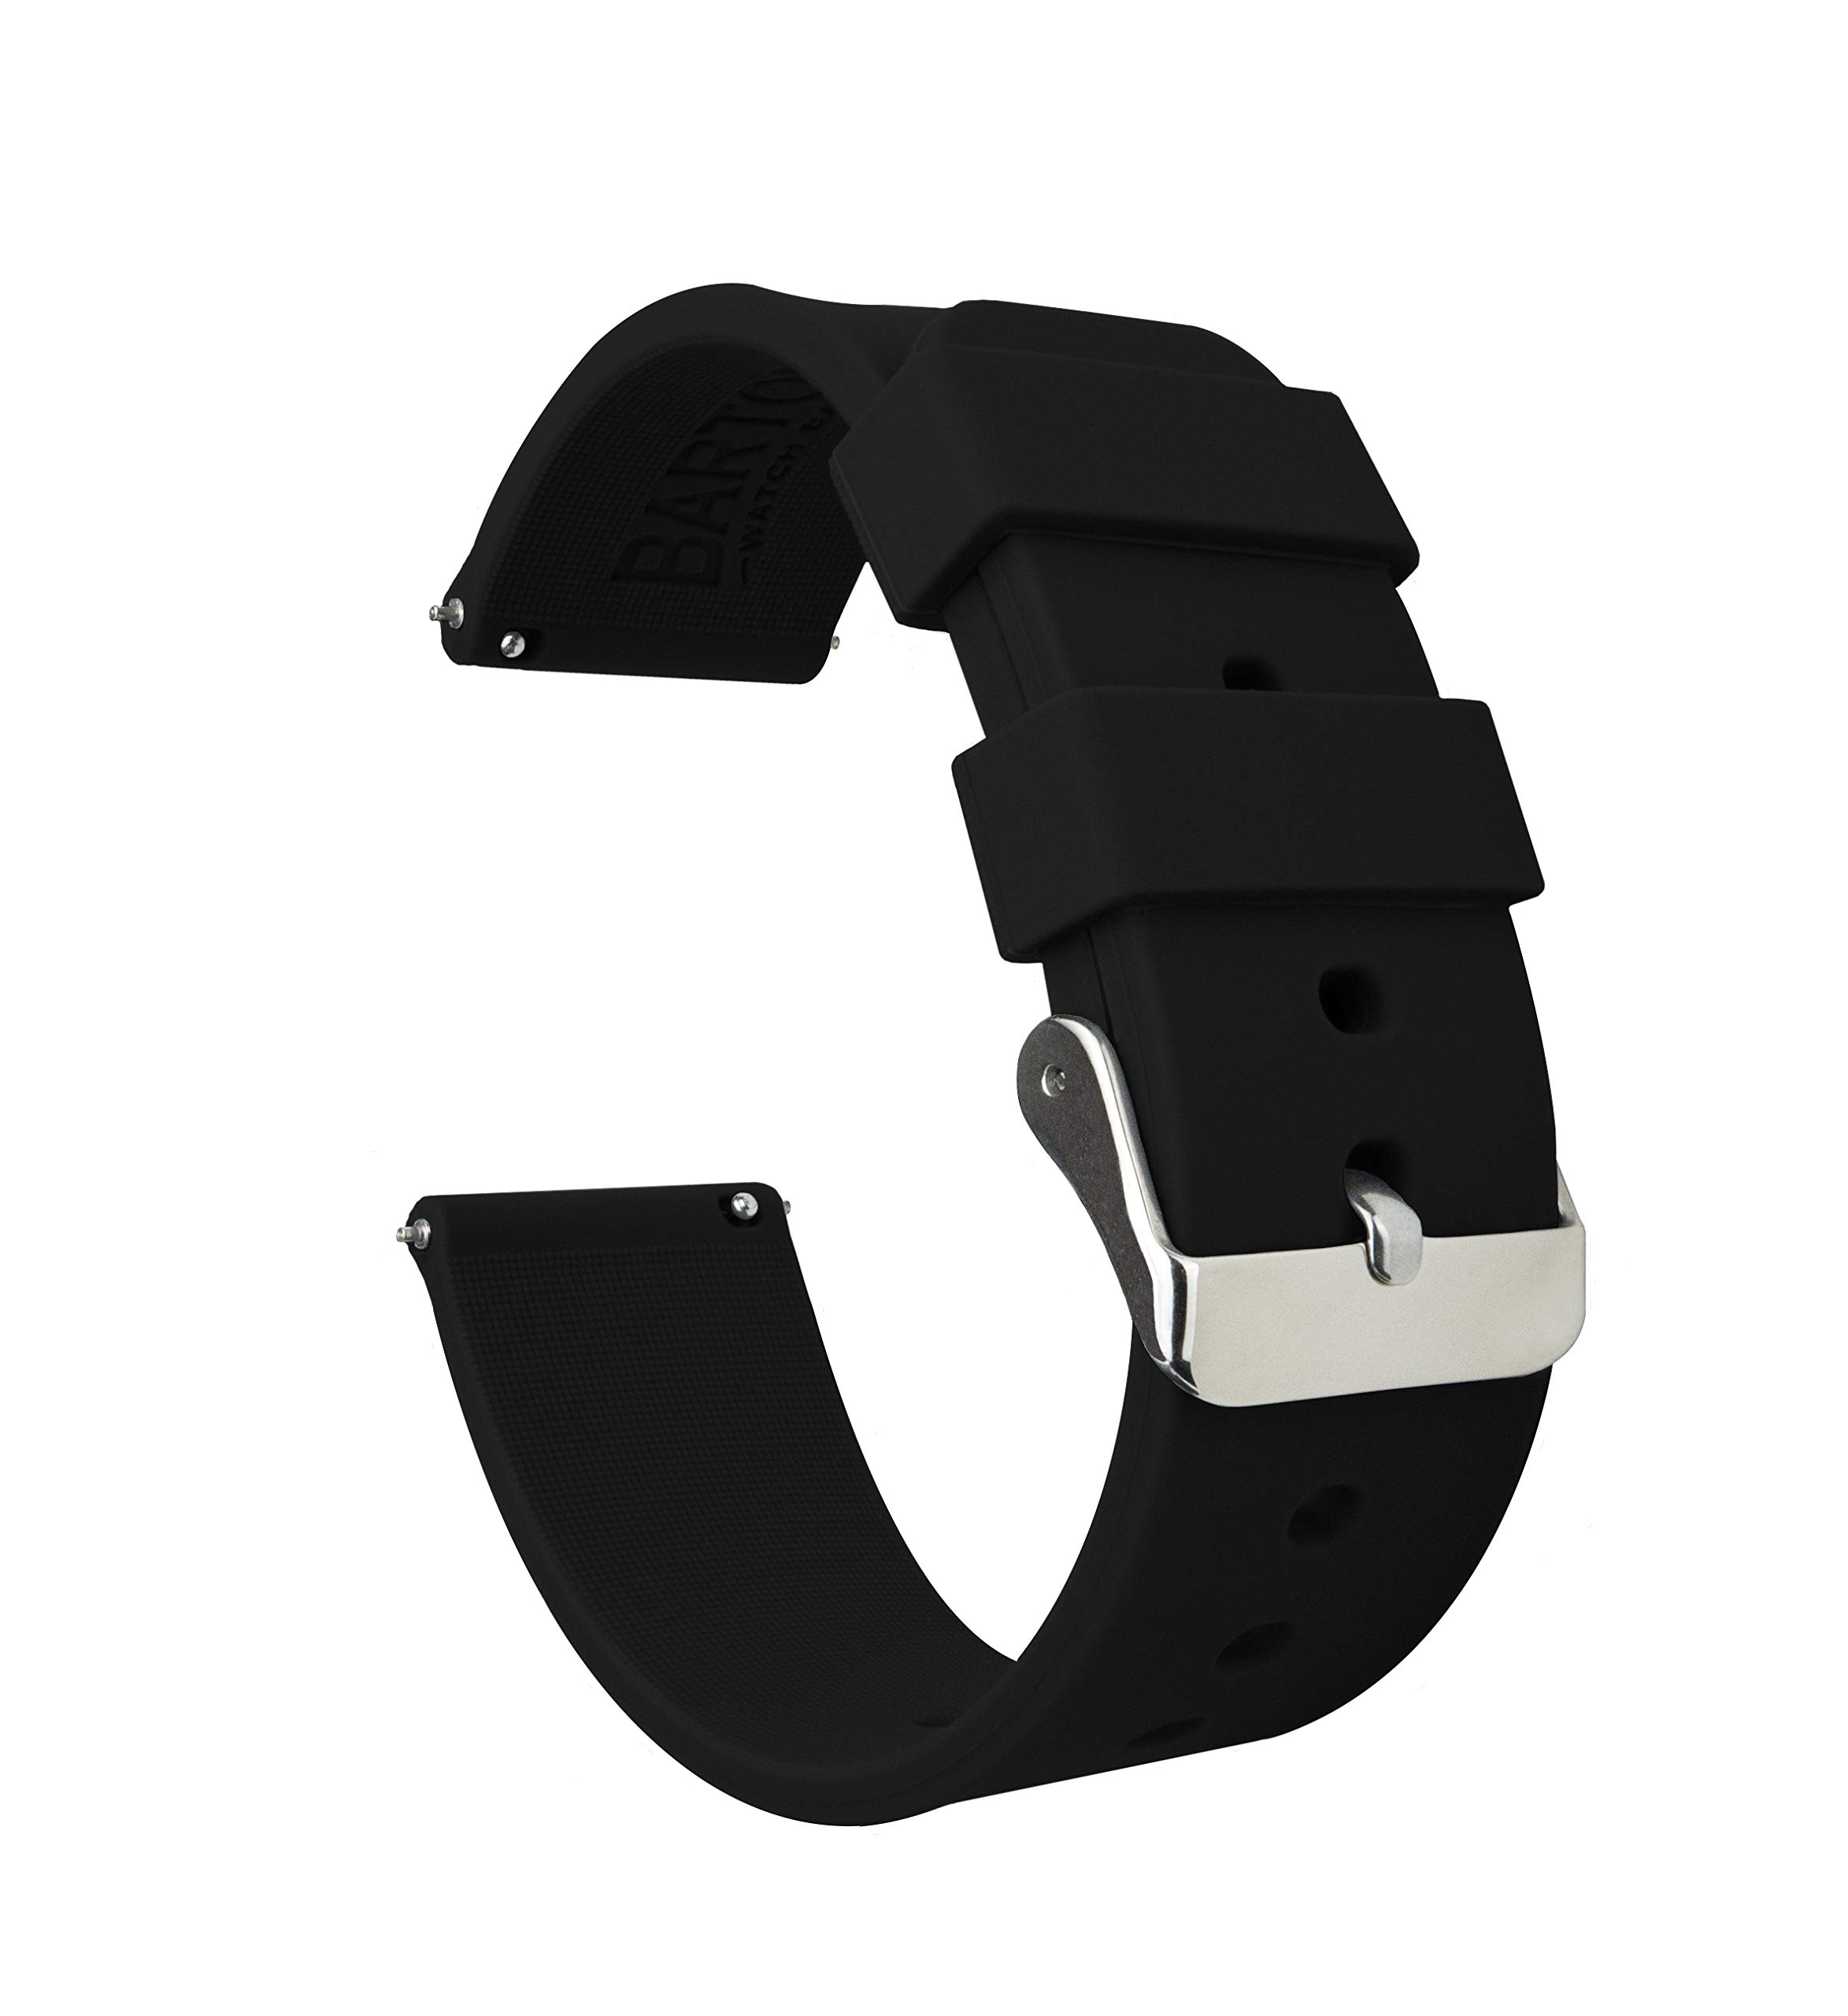 Barton Silicone Watch Bands - Quick Release Straps - Choose Color & Width - 16mm, 18mm, 20mm, 22mm - Black 22mm by Barton Watch Bands